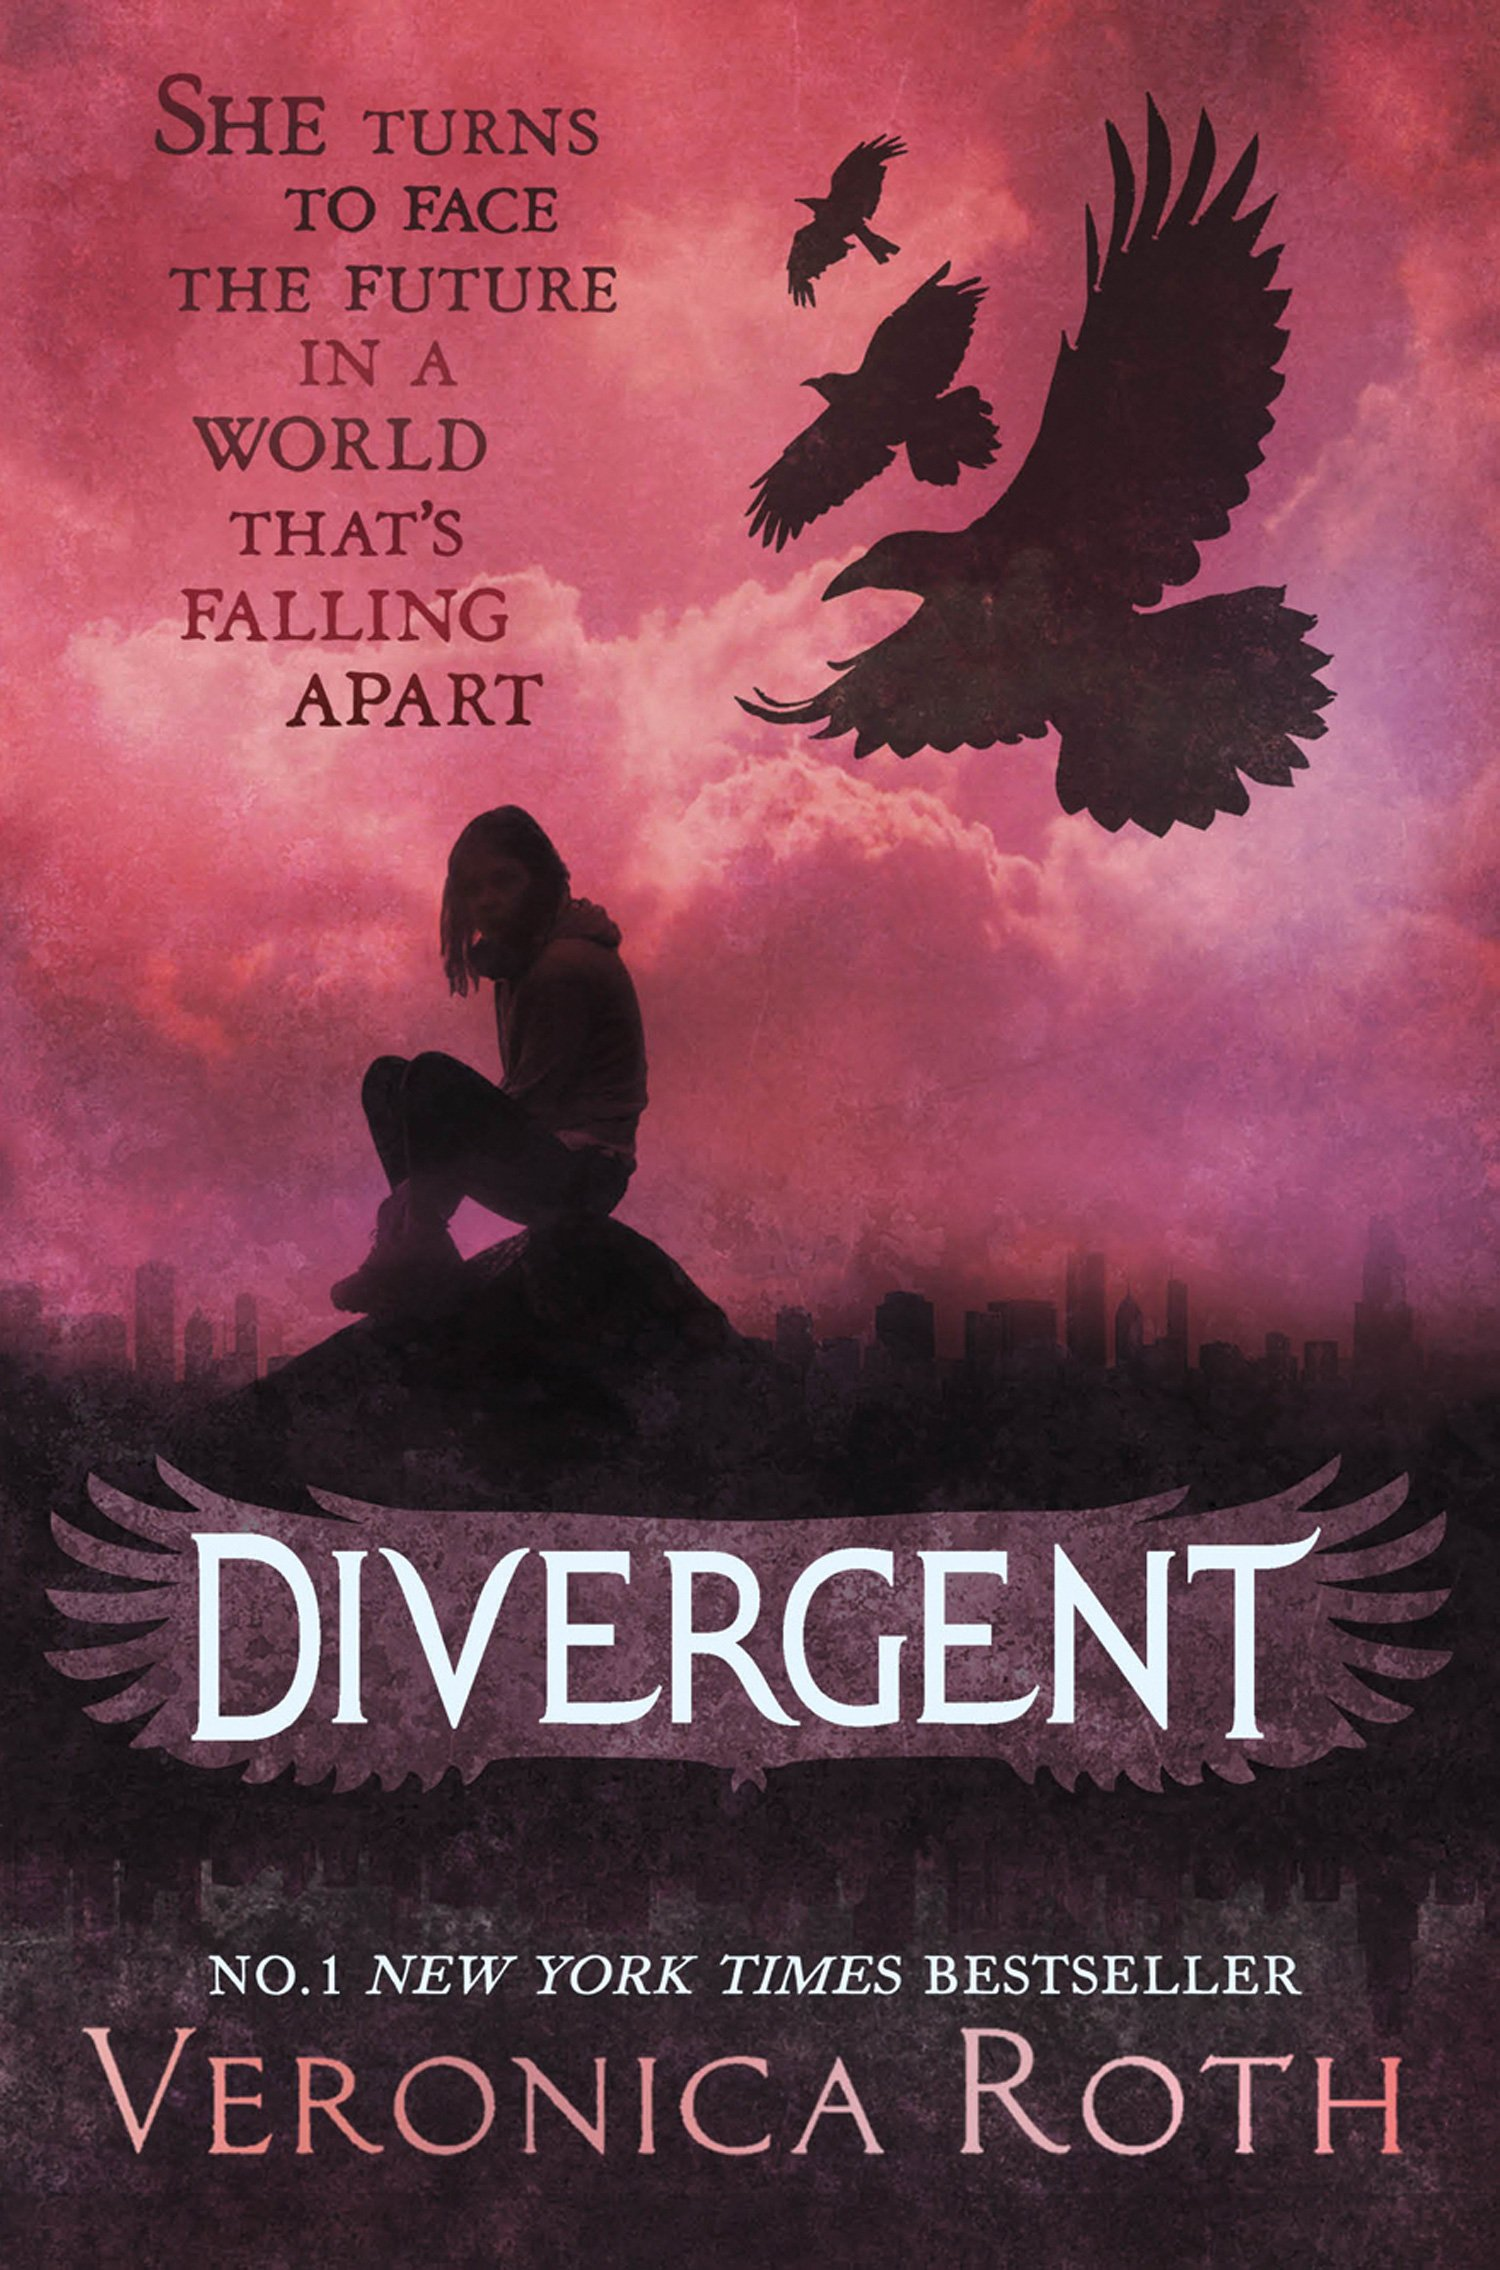 Buy Divergent (divergent, Book 1) Book Online At Low Prices In India   Divergent (divergent, Book 1) Reviews & Ratings  Amazon